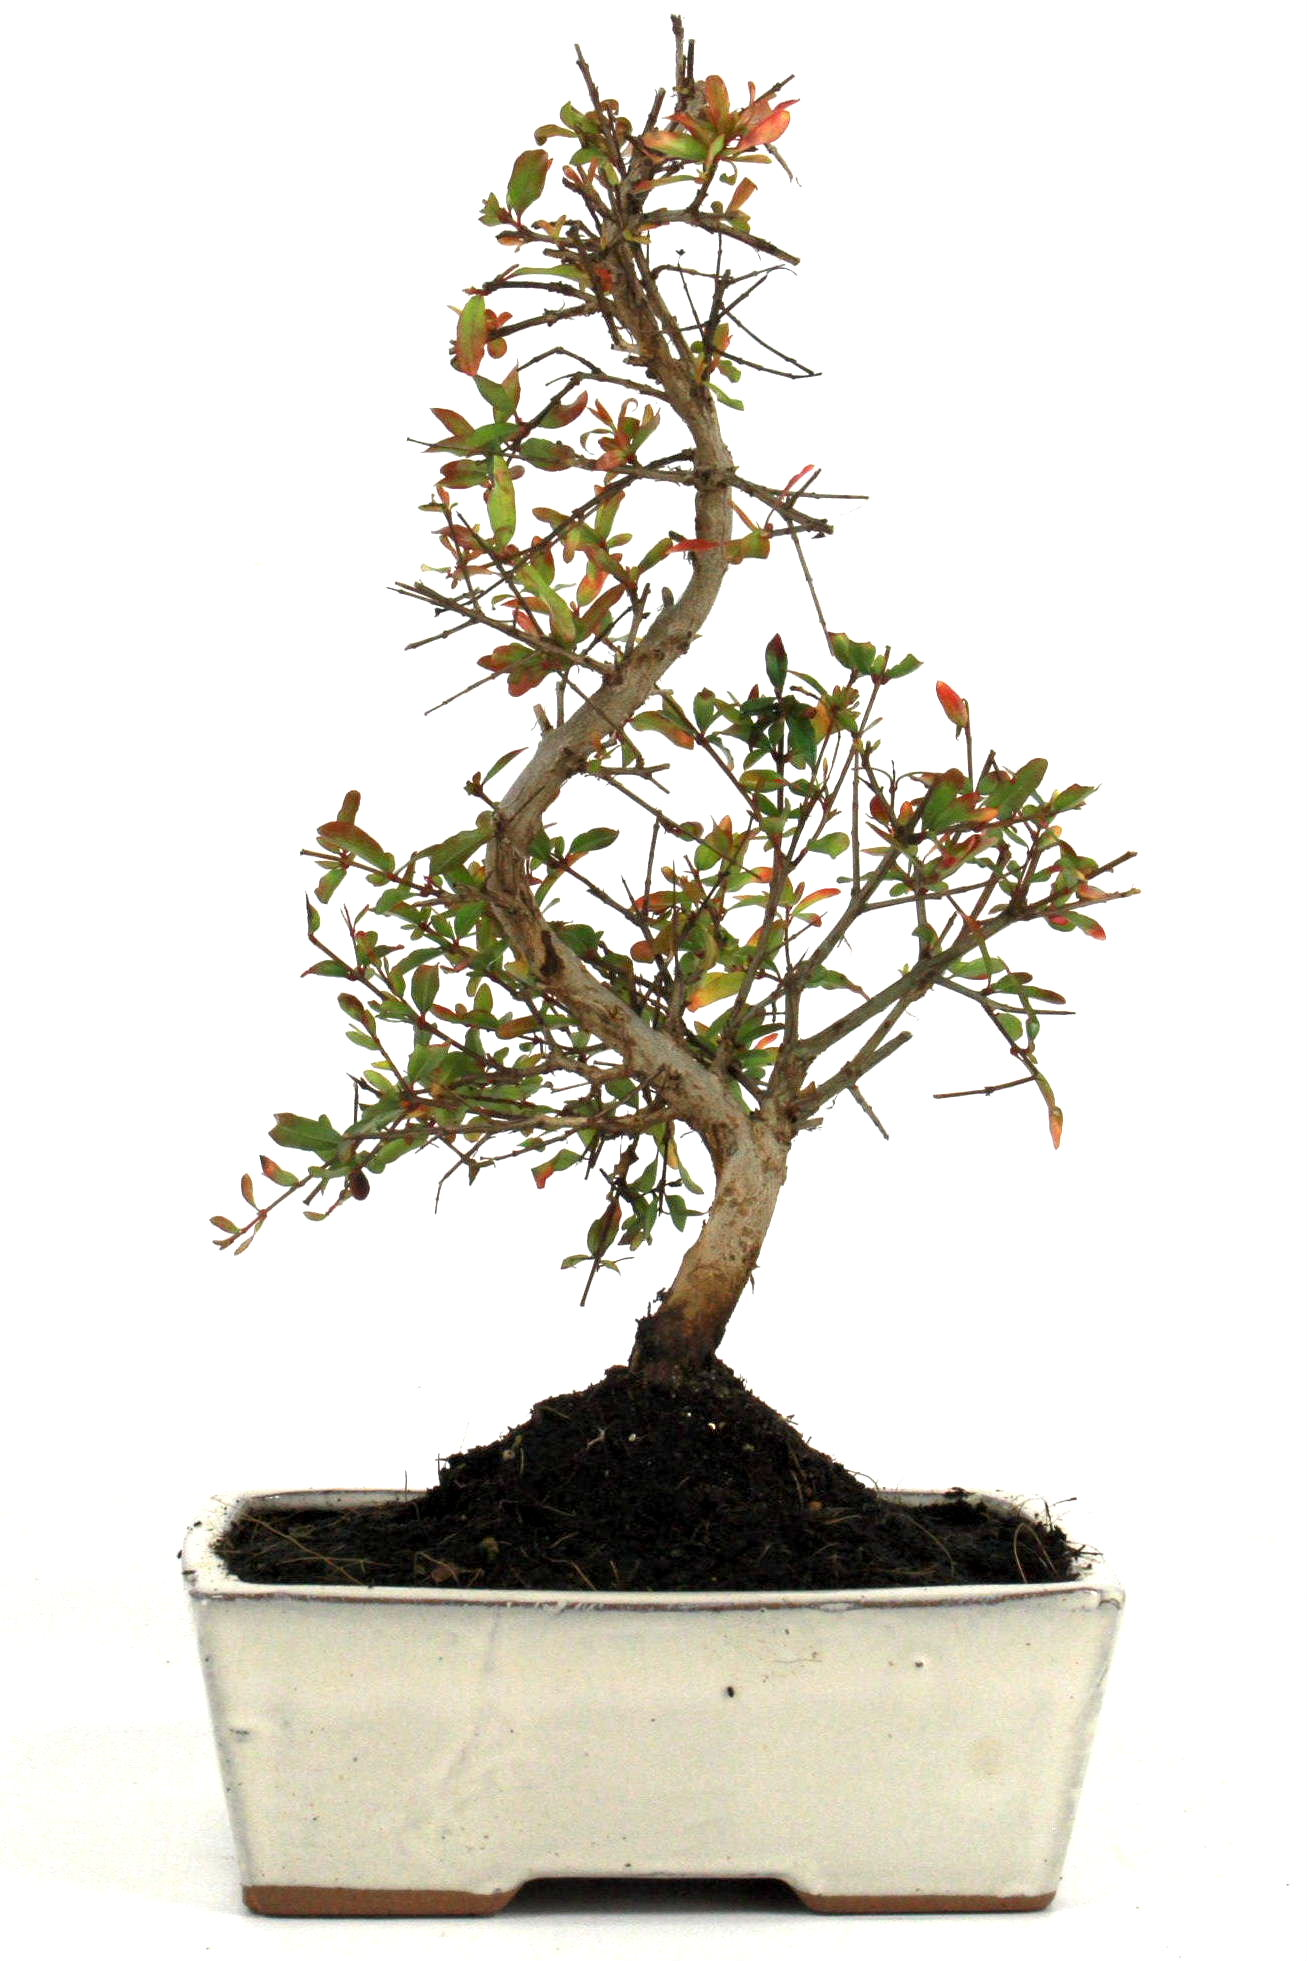 Granatapfel bonsai 25 30 cm 1623 bei oyaki bonsai kaufen for Bonsai onlineshop